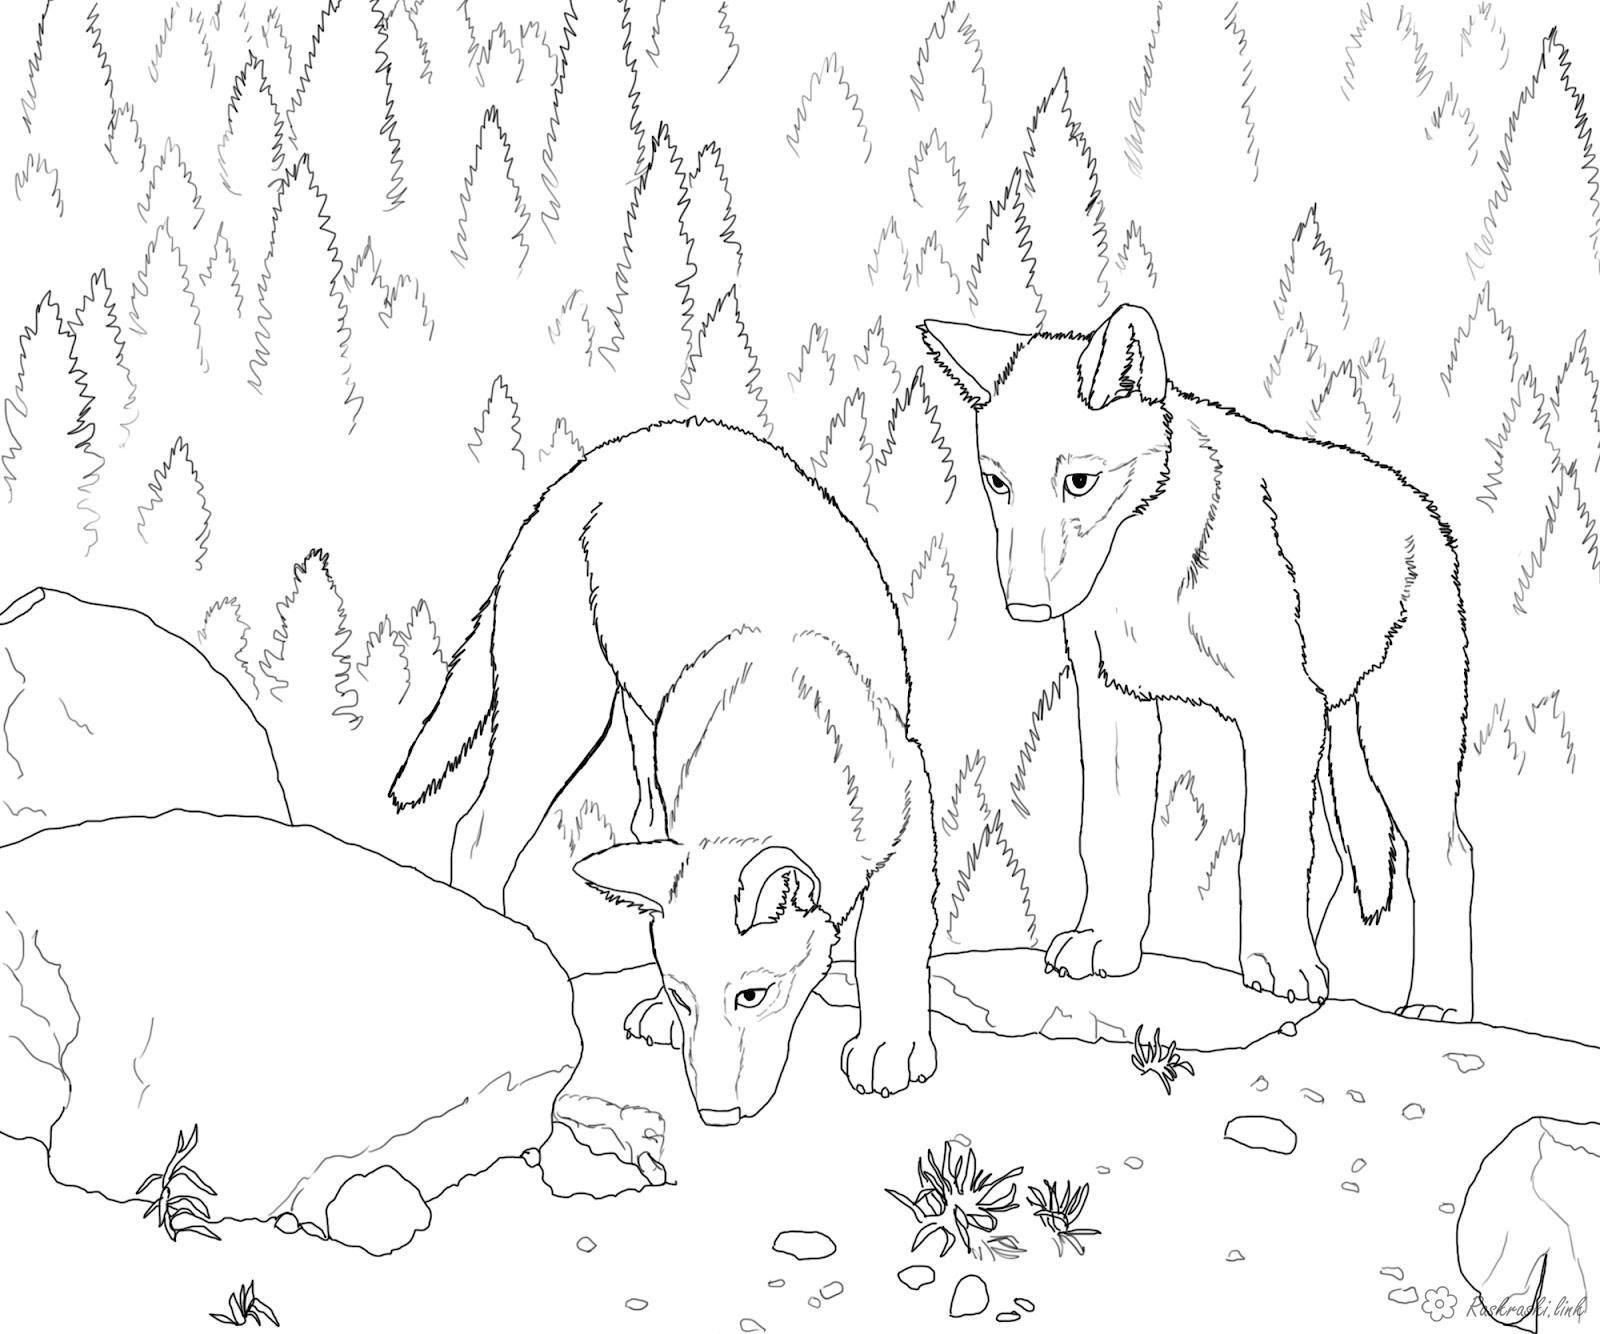 Coloring cub coloring pages animals, wild animals, forest animals, coloring pages wolf, two cub, forest, trees, complex coloring pages, print